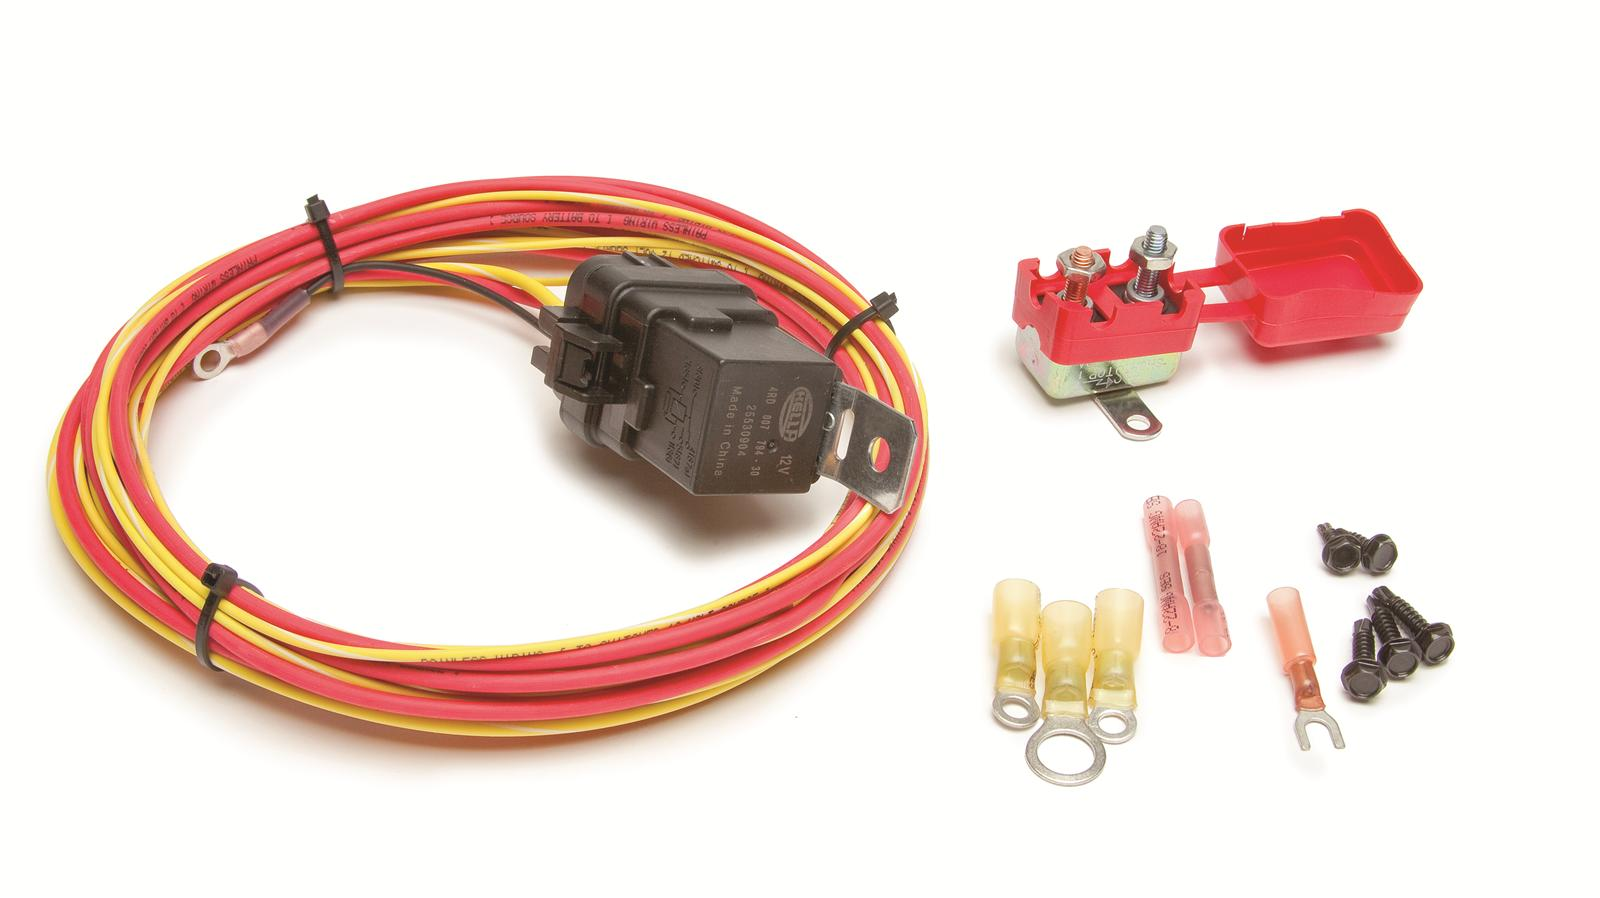 Admirable Painless Performance Universal Fuel Pump Relay Kits 30131 Free Wiring Digital Resources Indicompassionincorg